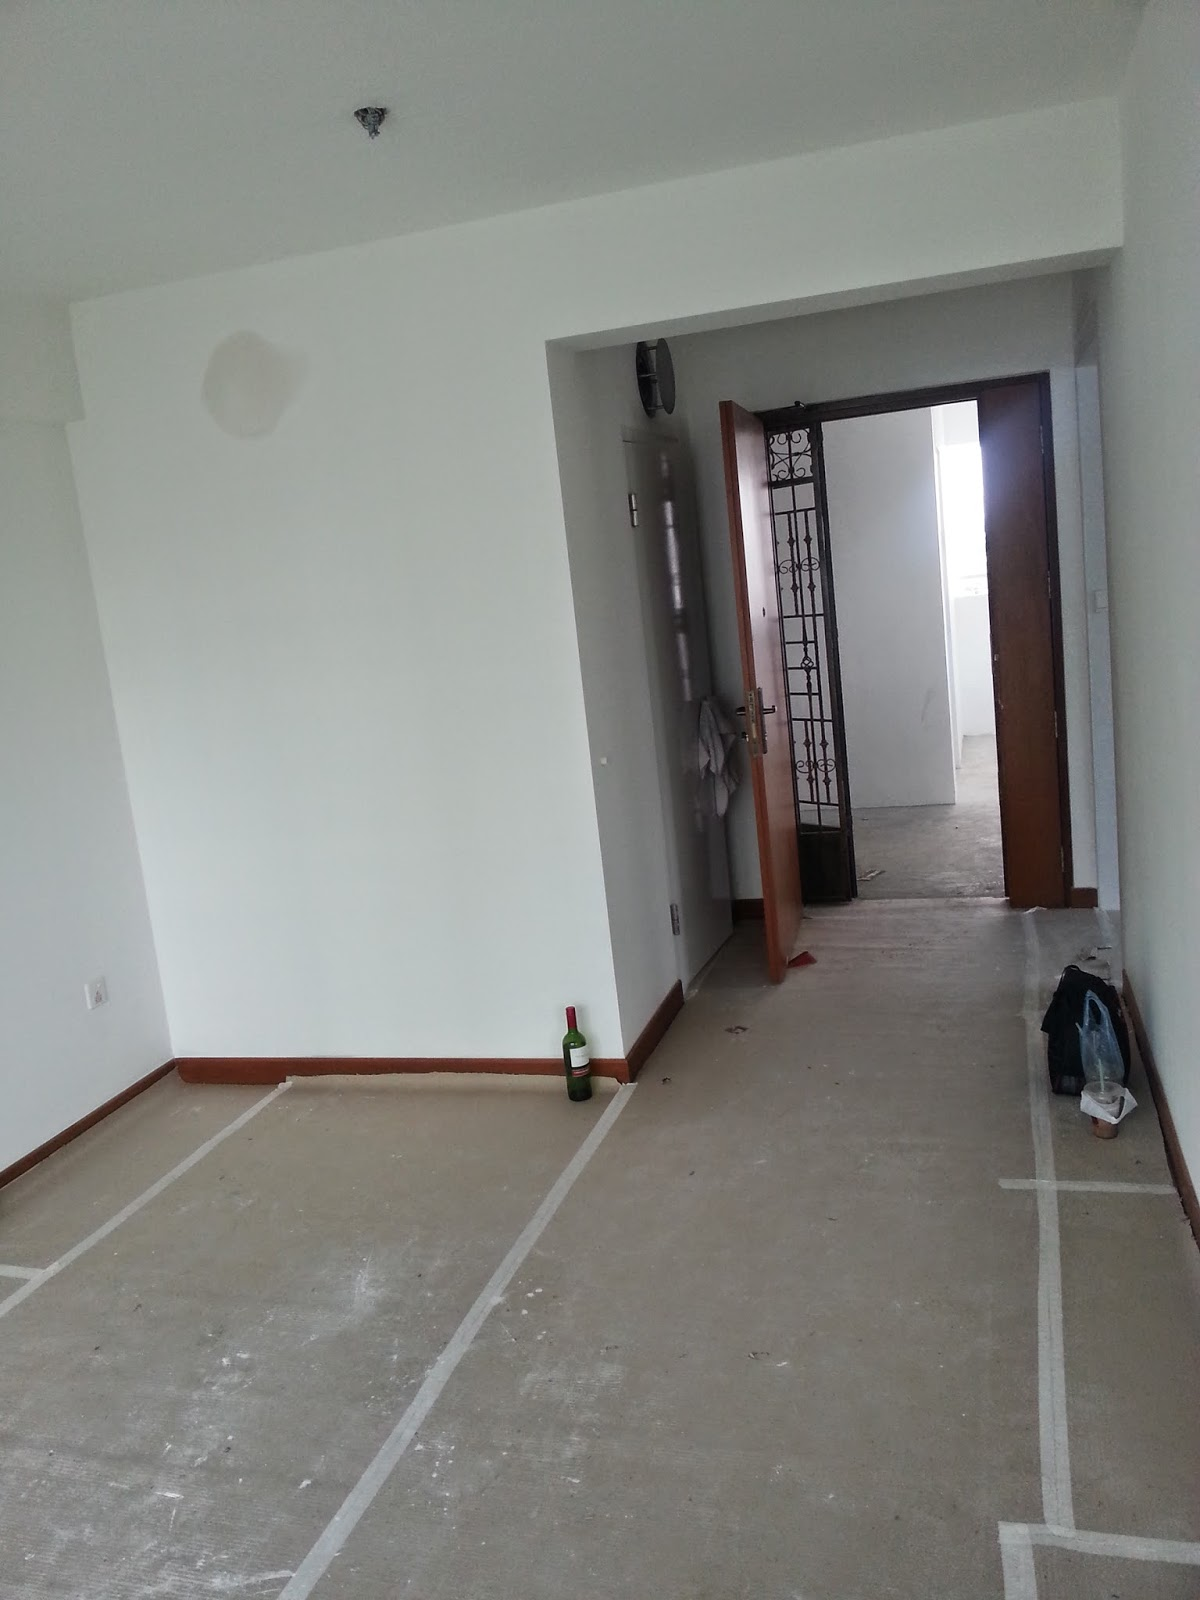 Hdb 2 room bto renovation small space big ideas june 2014 for 4 room flat renovation design